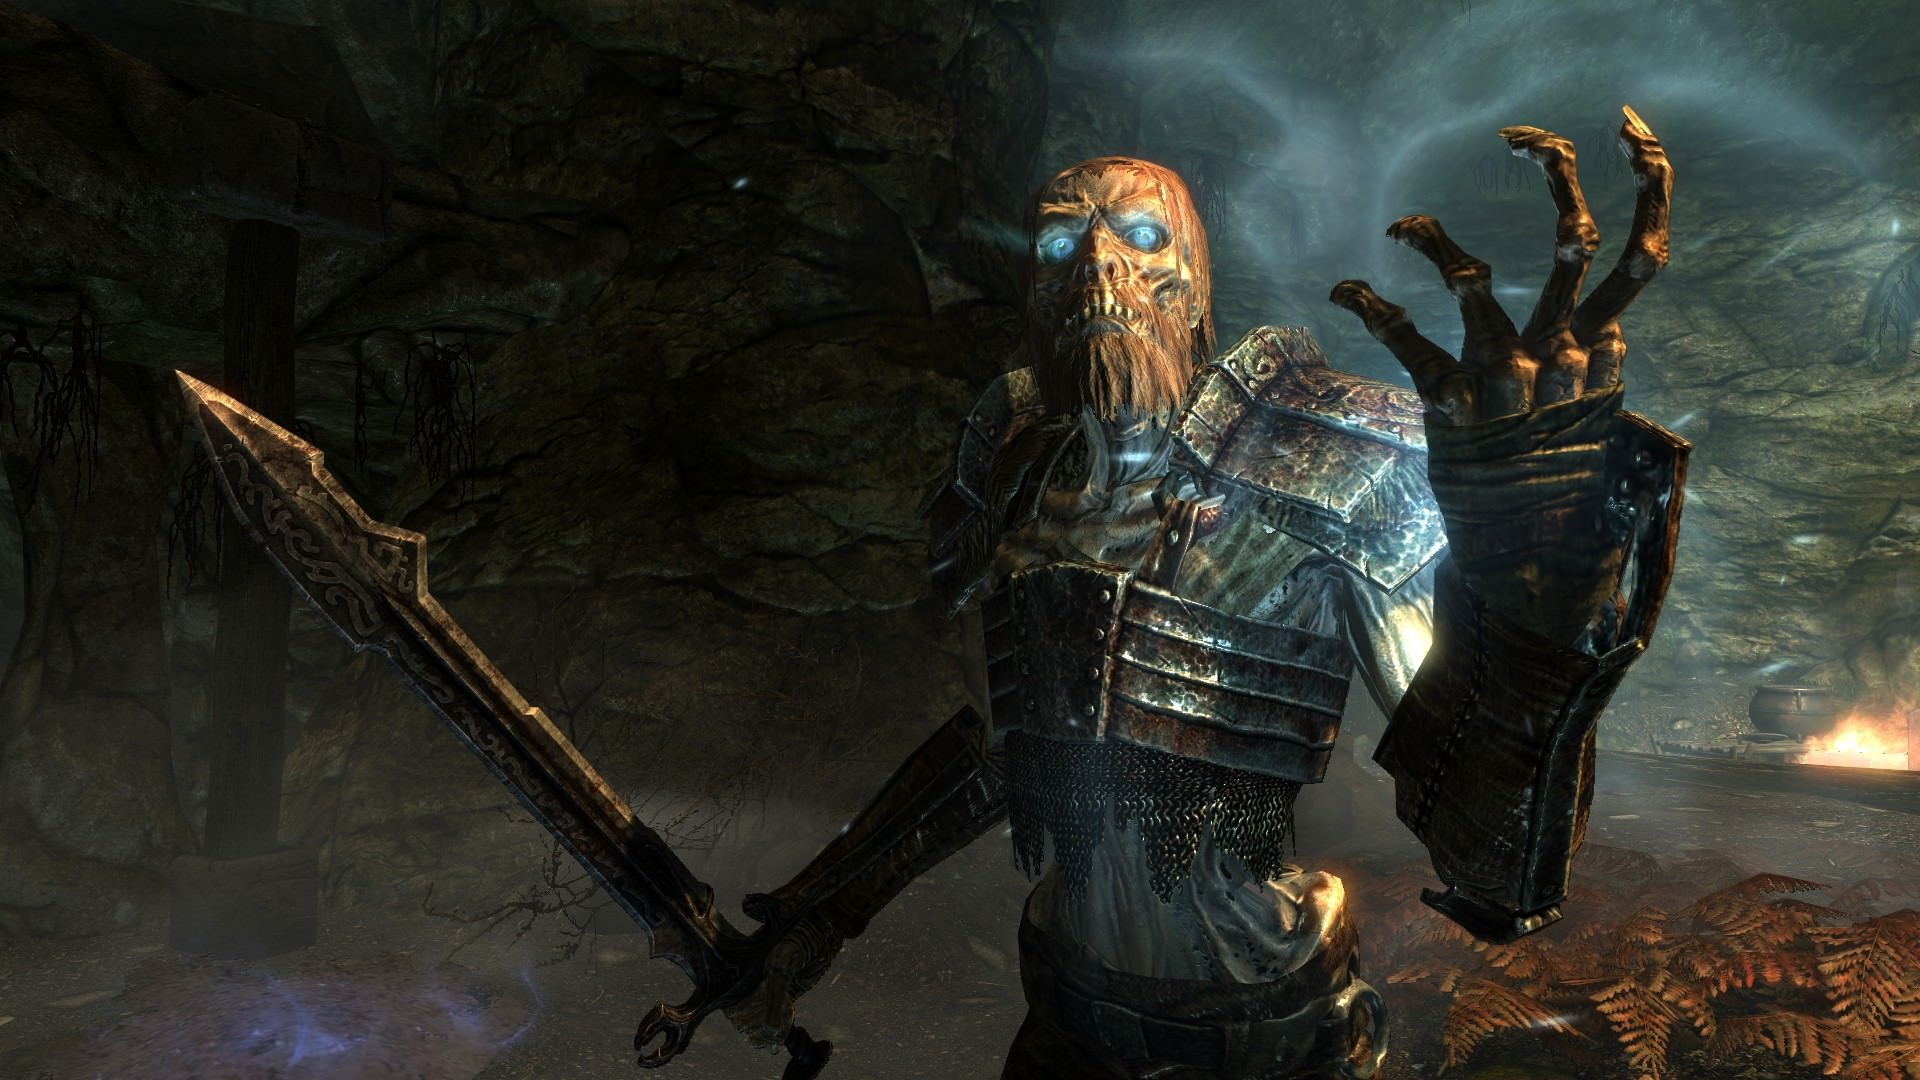 Res: 1920x1080, Zombies of the Frozen North: White Walkers and Old Norse Revenants –  Medieval Studies Research Blog